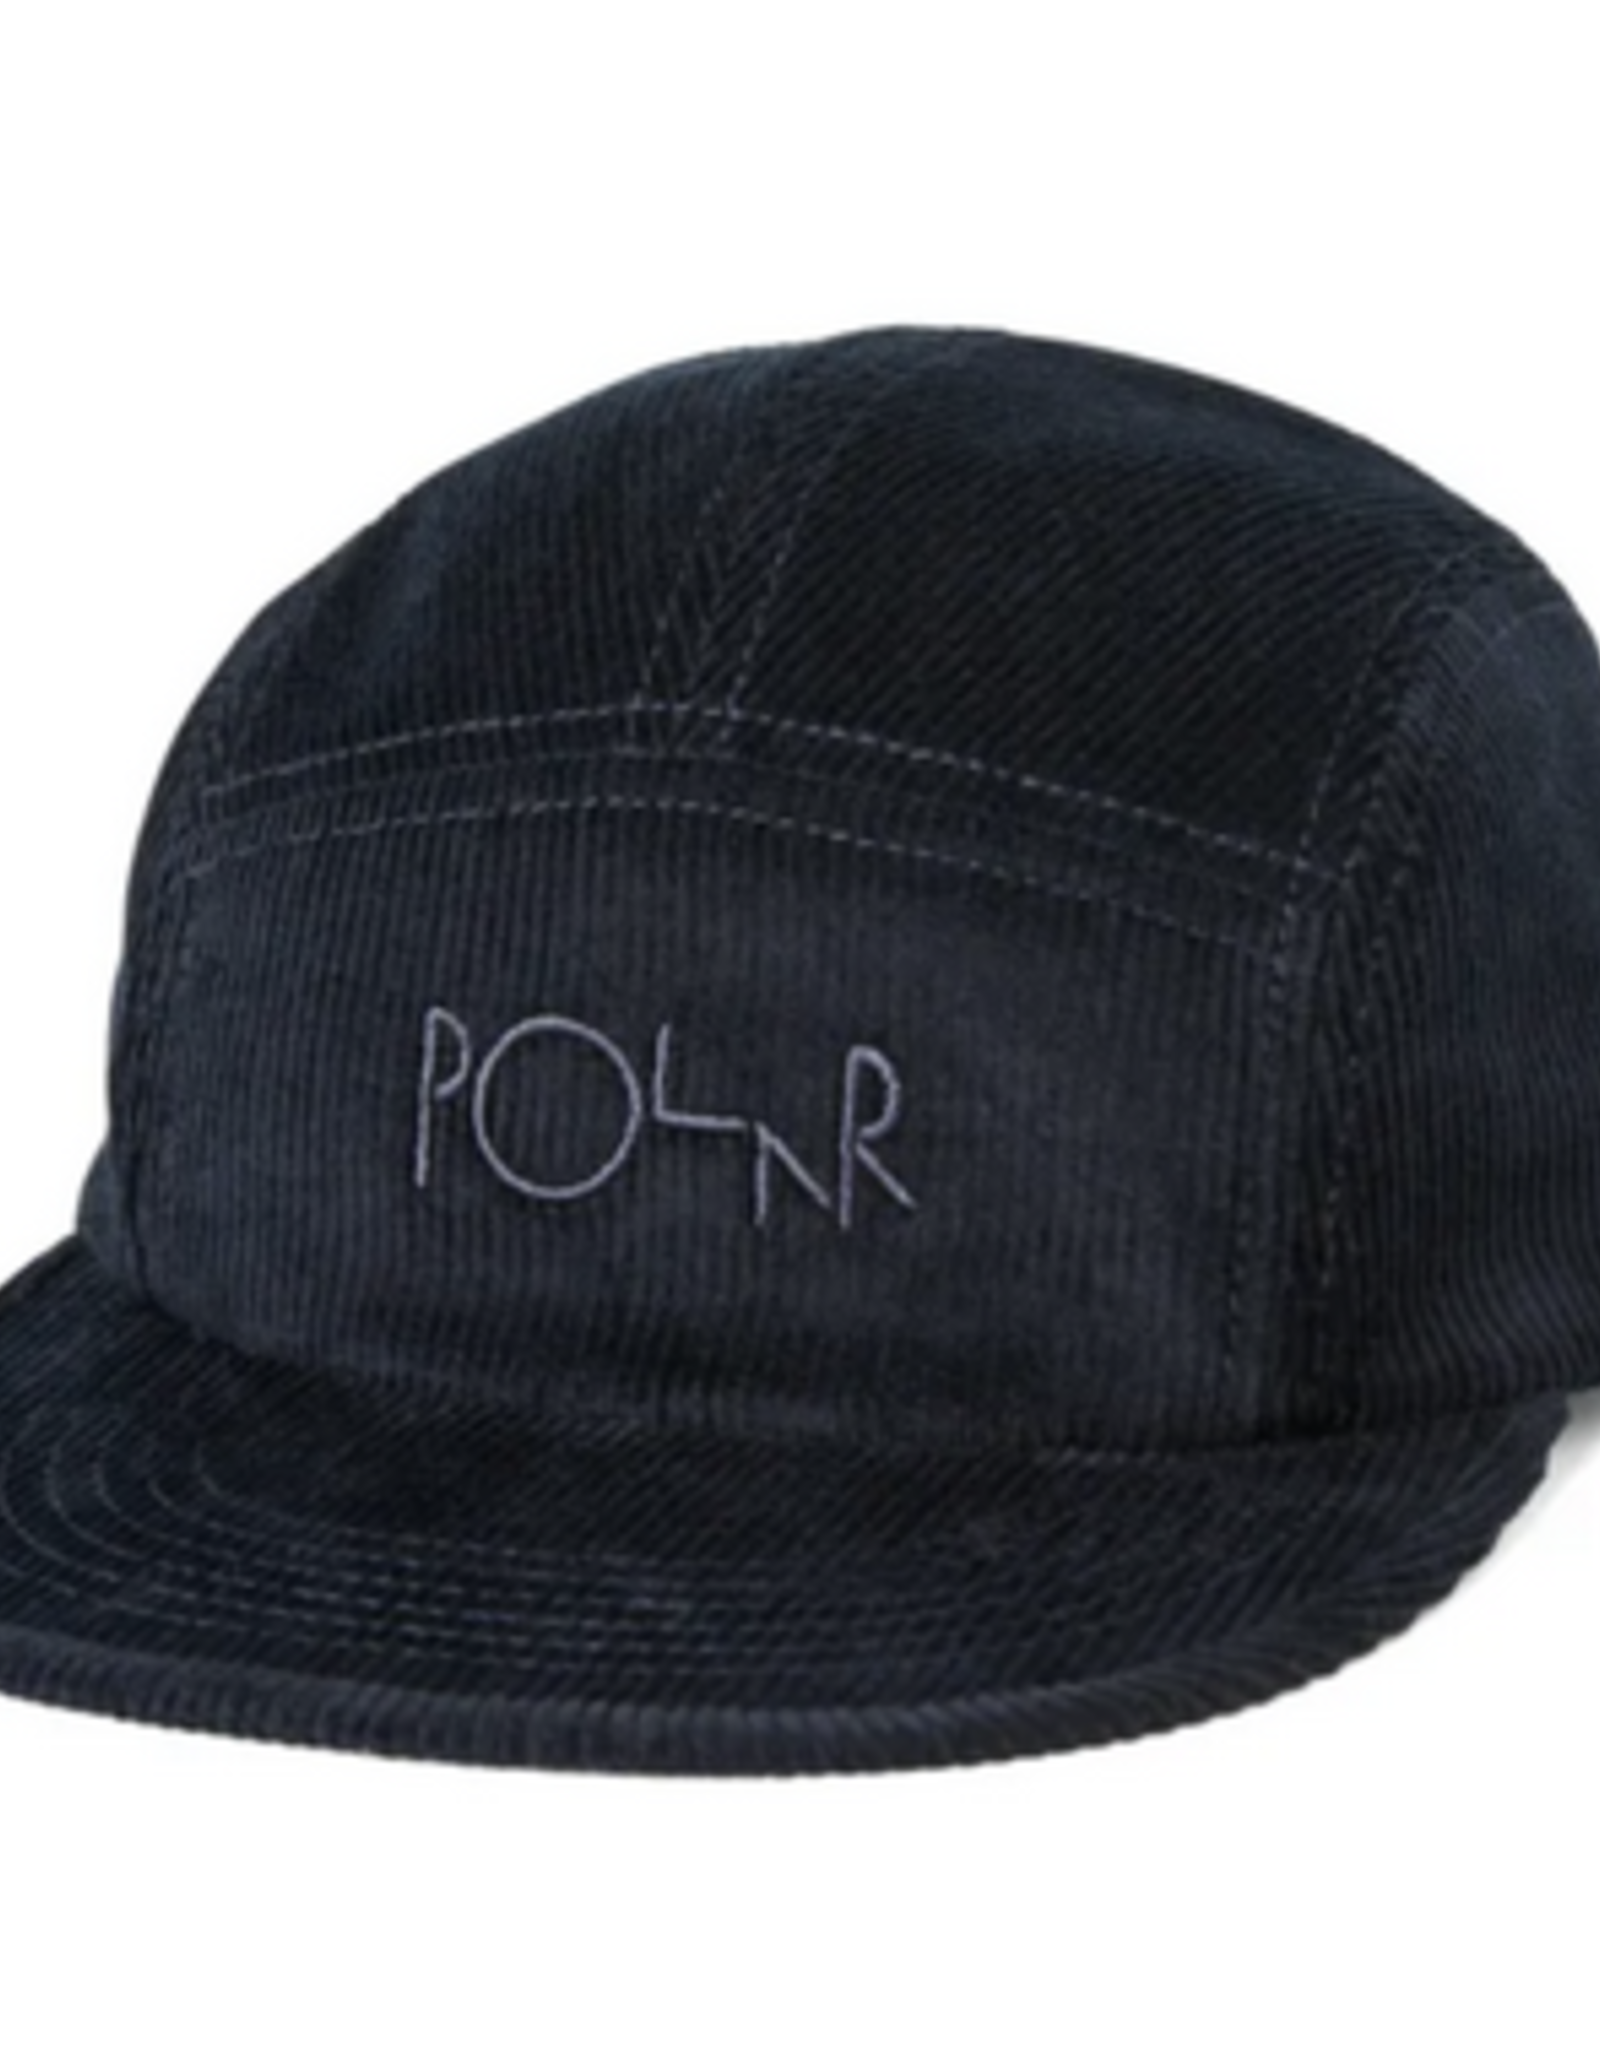 POLAR POLAR CORD CORDUROY SPEED CAP CLIP BACK HAT BLACK